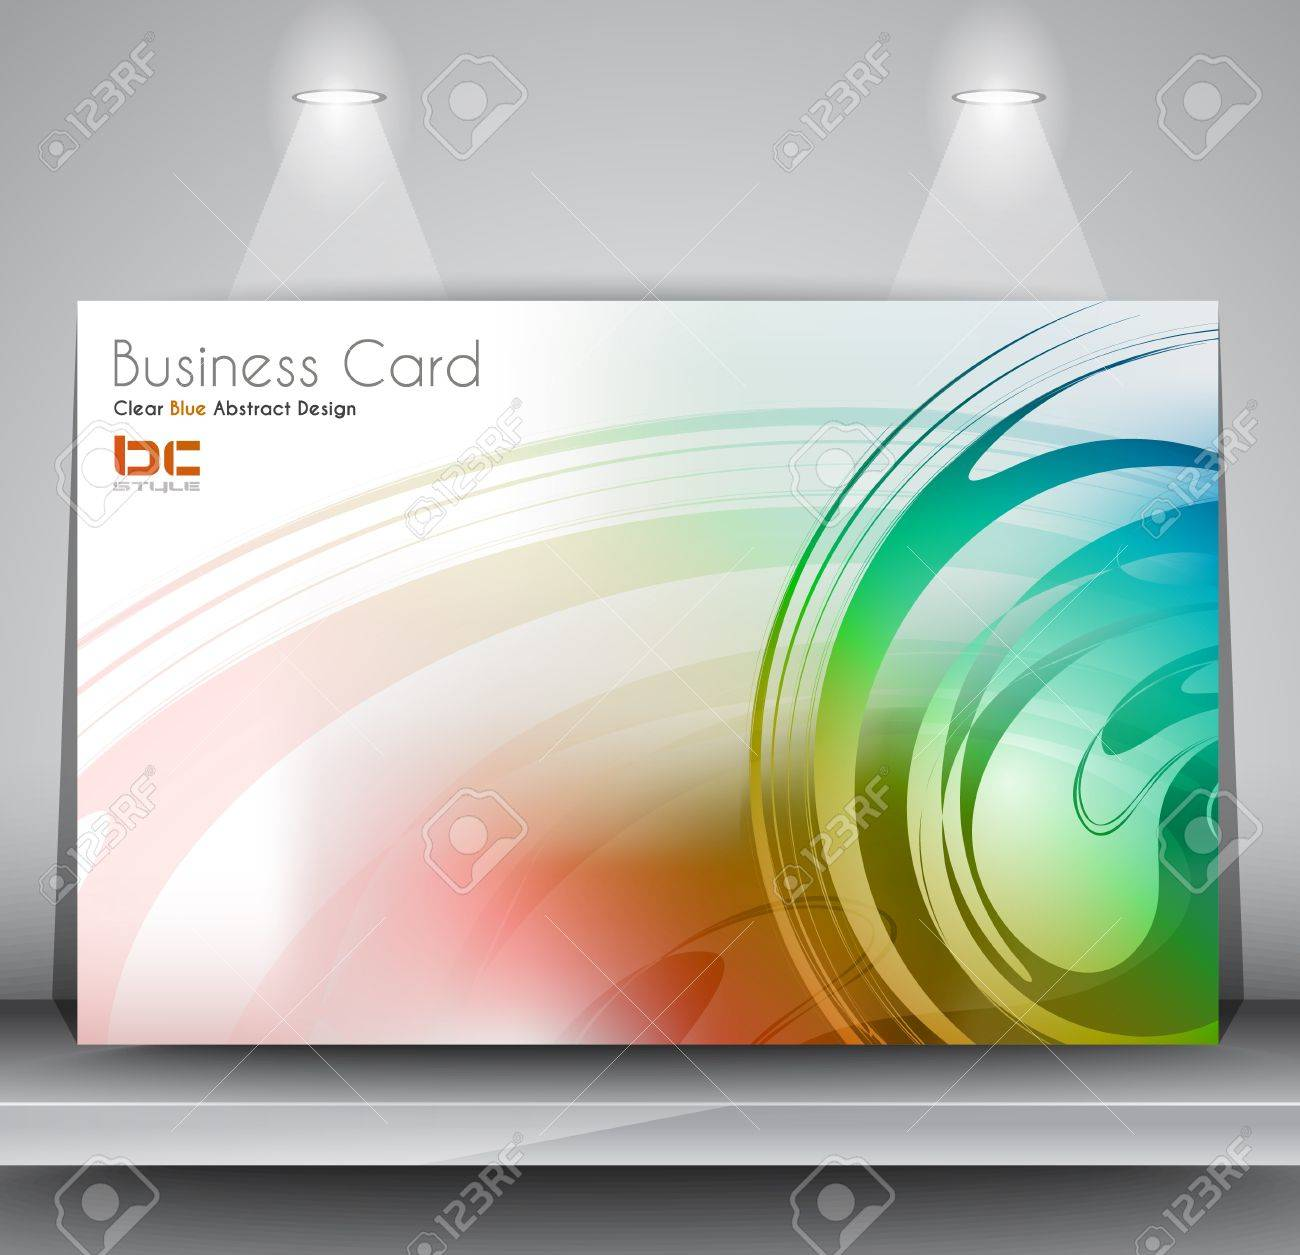 Elegant Business Card Design Template Ideal For Corporate Card